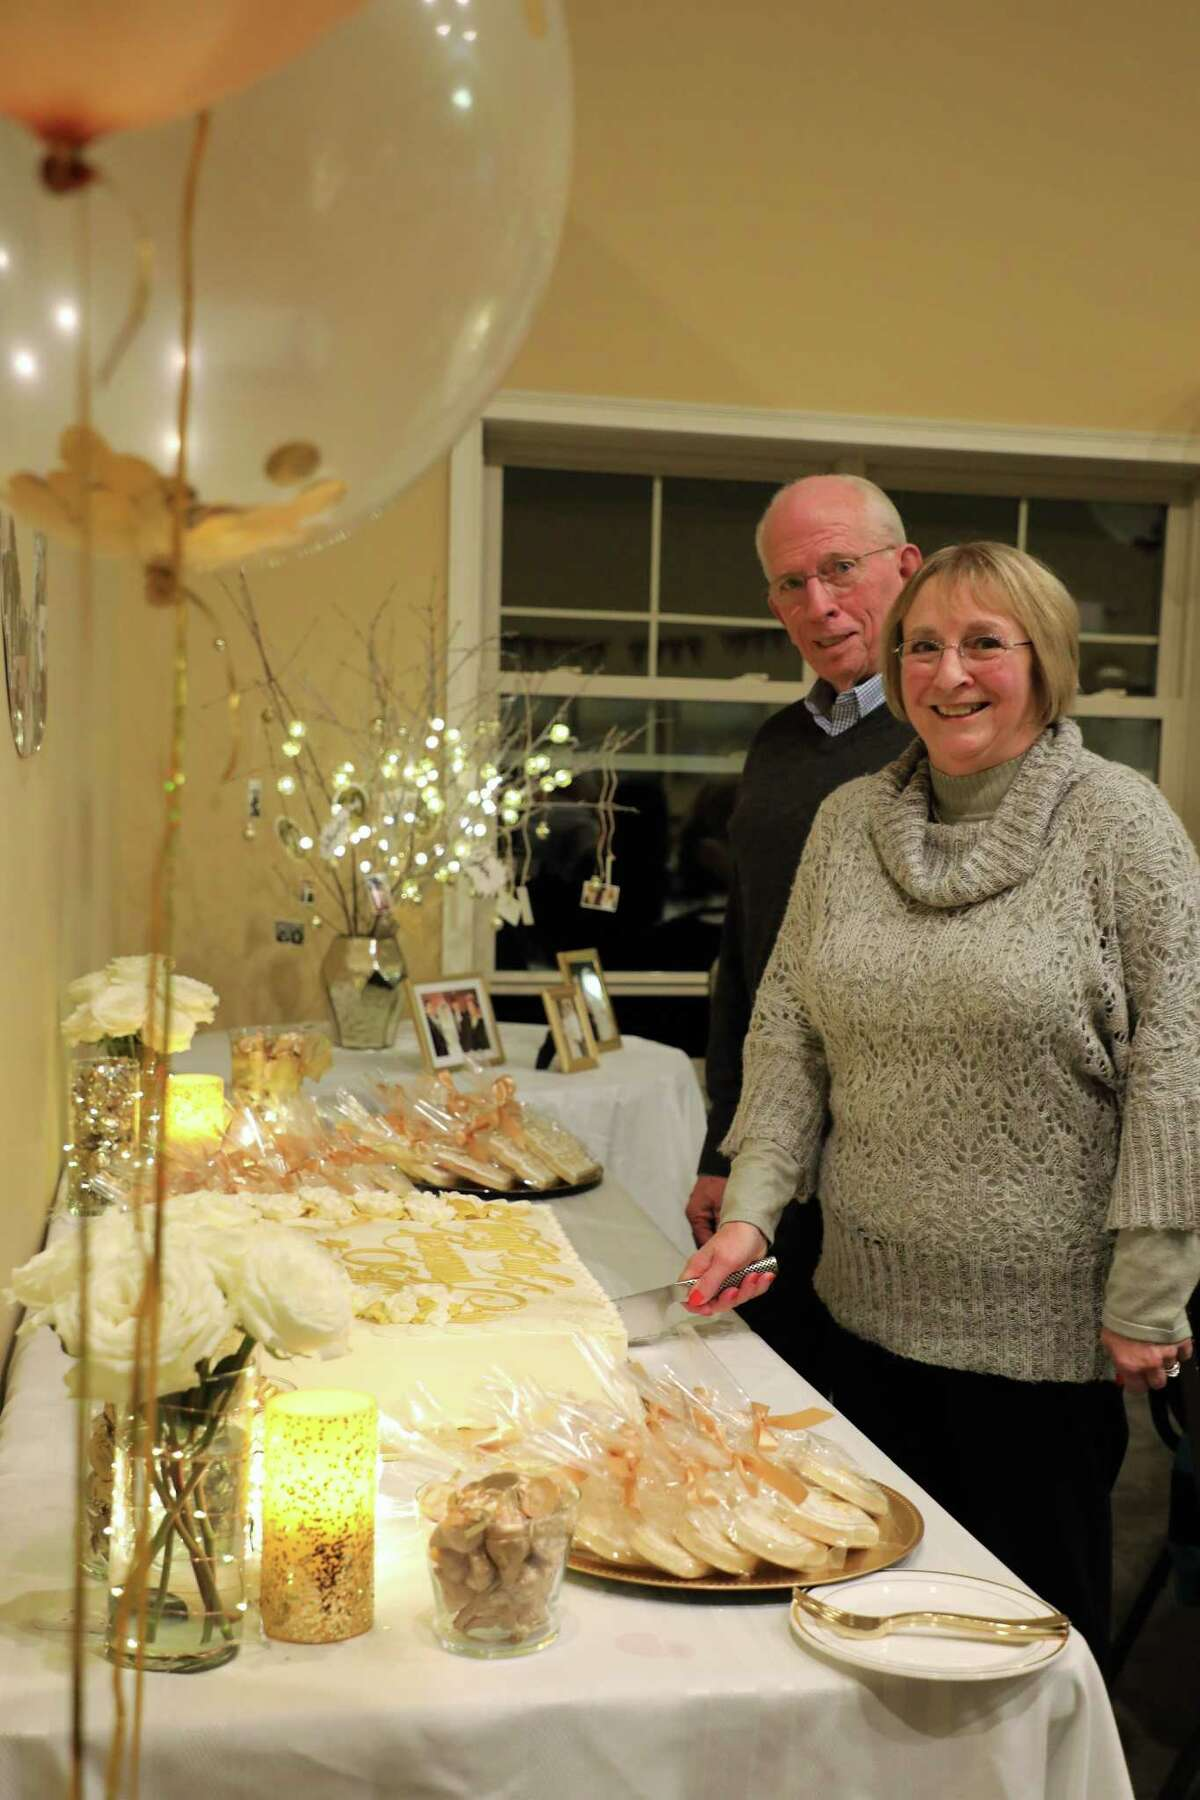 Jim and Shirley Race at a surprise 50th anniversary party at Mill Hollow Apartments, Dec. 28, 2018. (Photo provided)